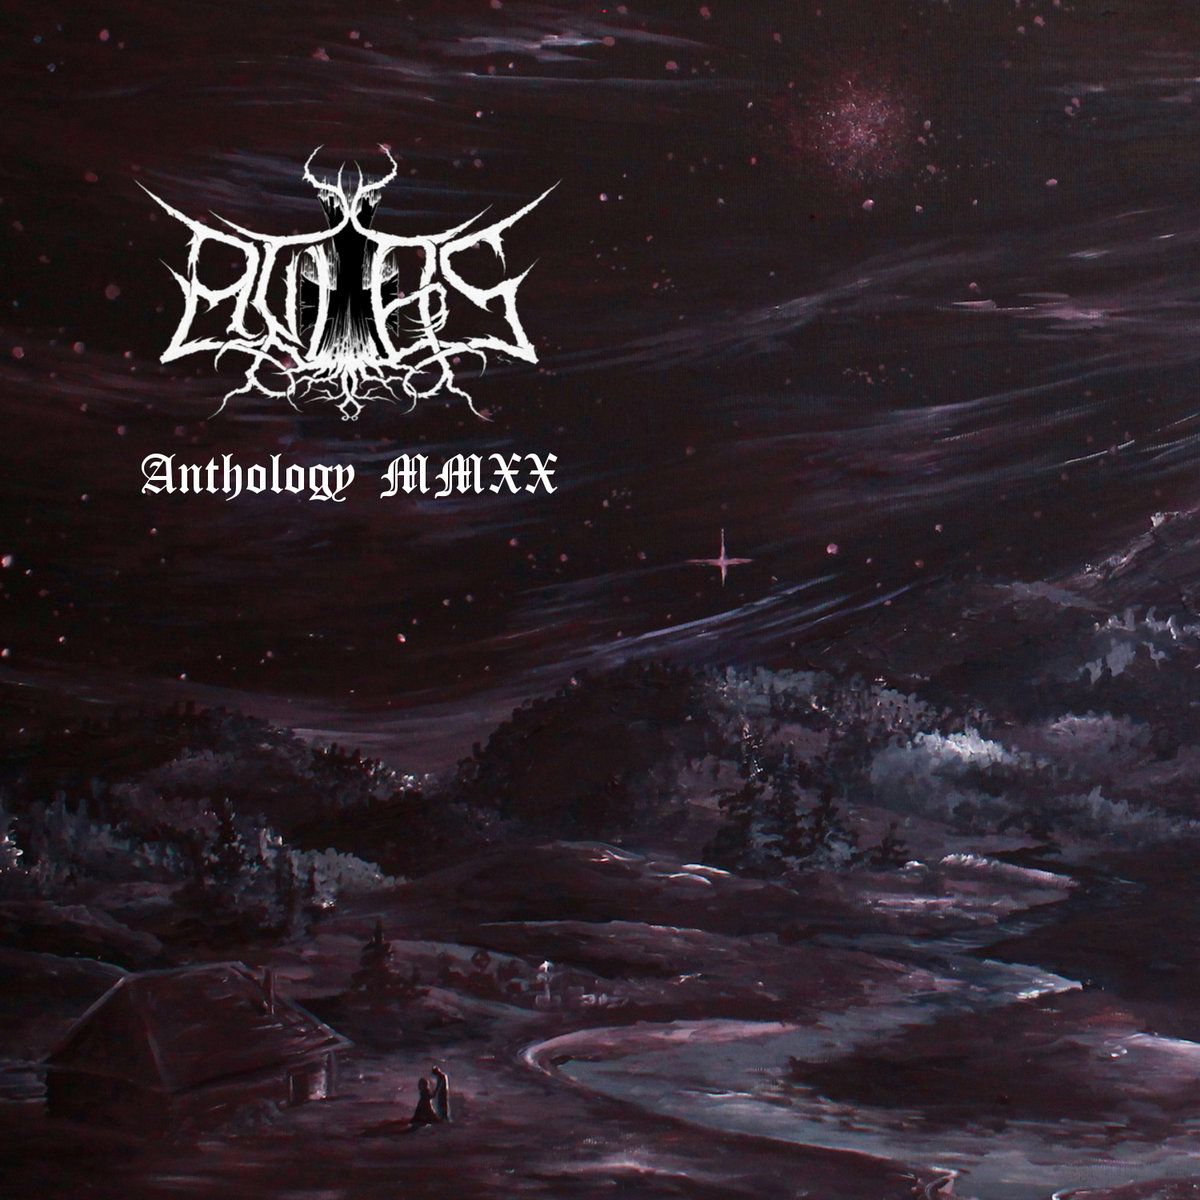 Review for Avitas - Anthology MMXX